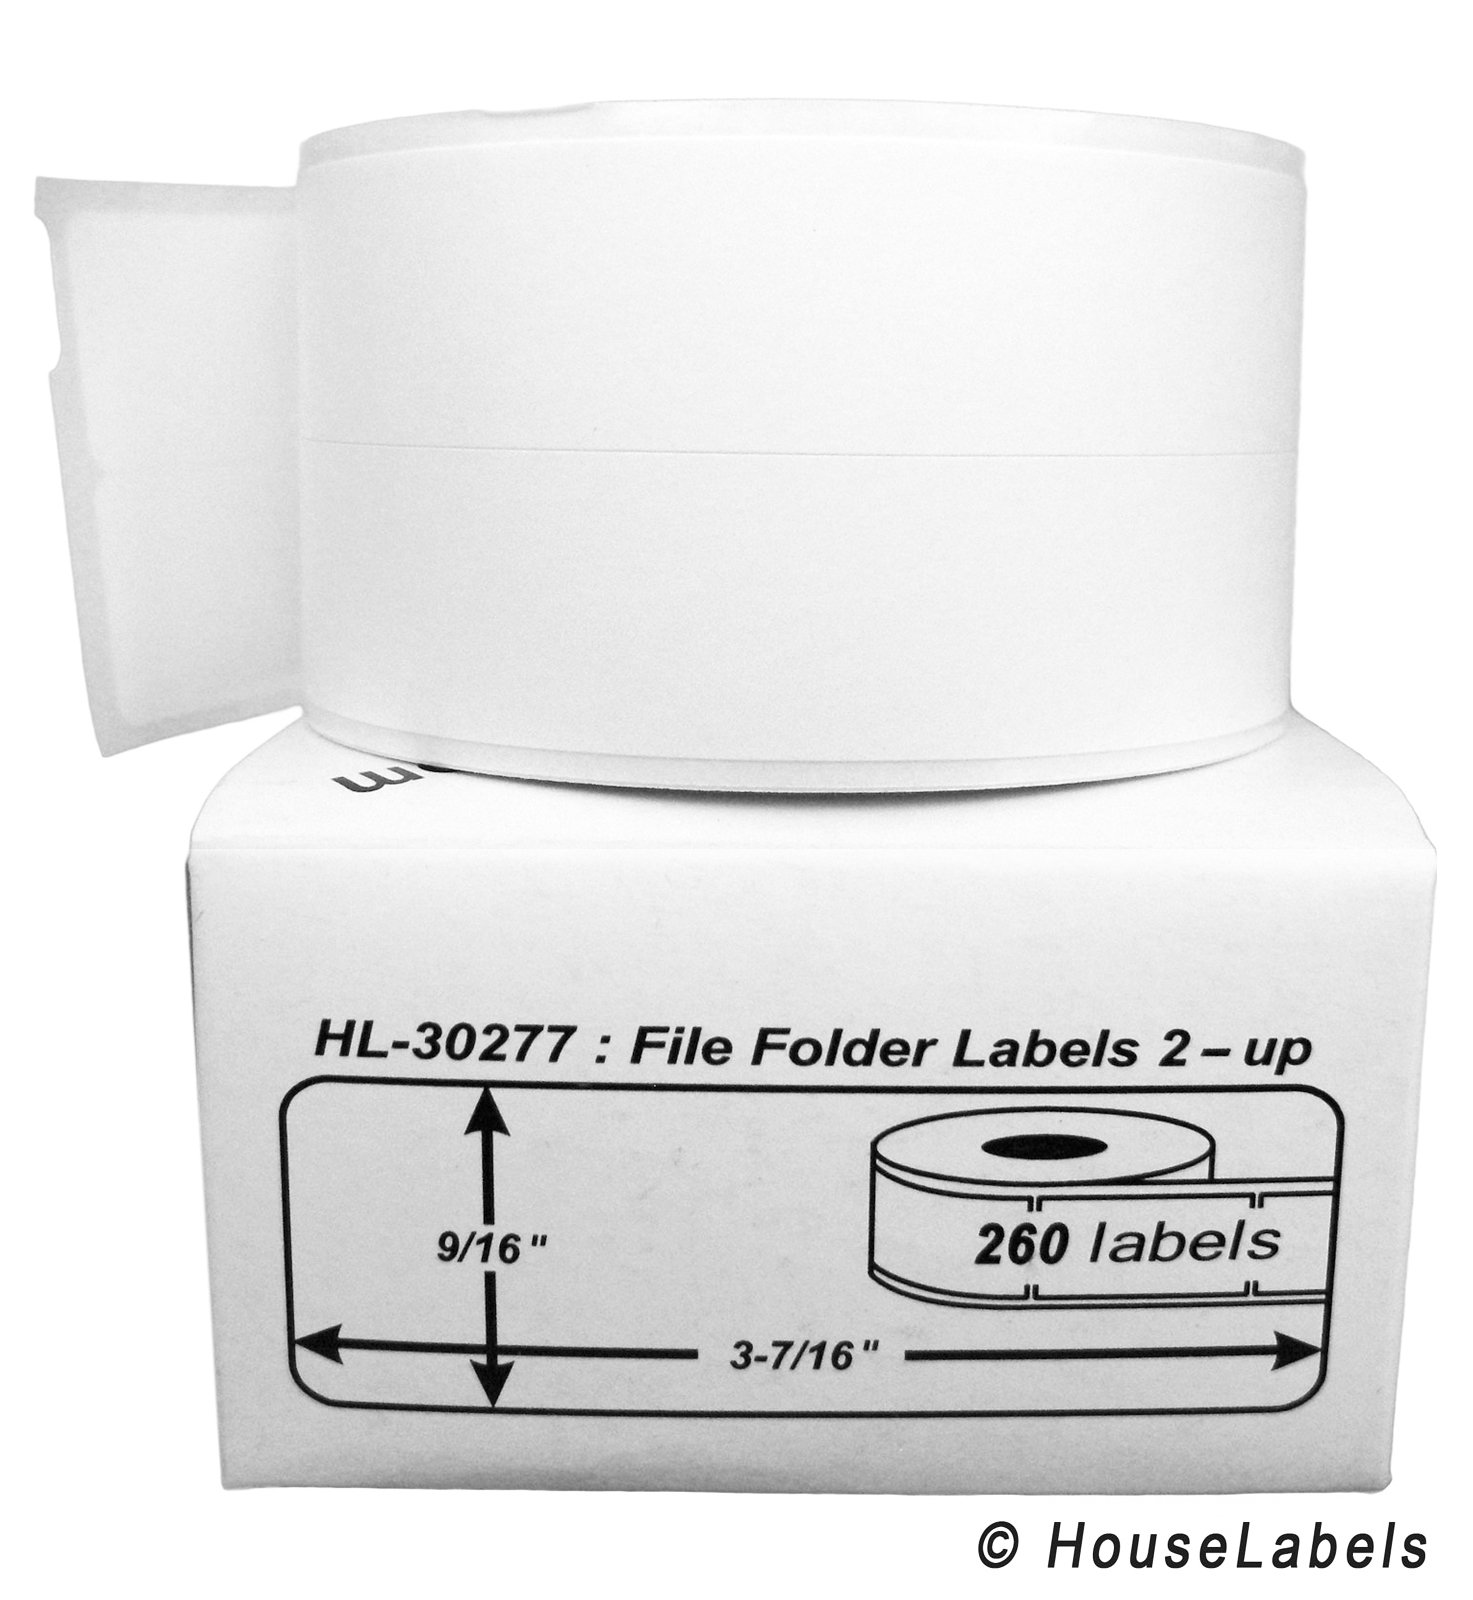 48 Rolls; 260 Labels per Roll of DYMO-Compatible 30277 File Folder Labels 2-Up (9/16'' x 3-7/16'') -- BPA Free!